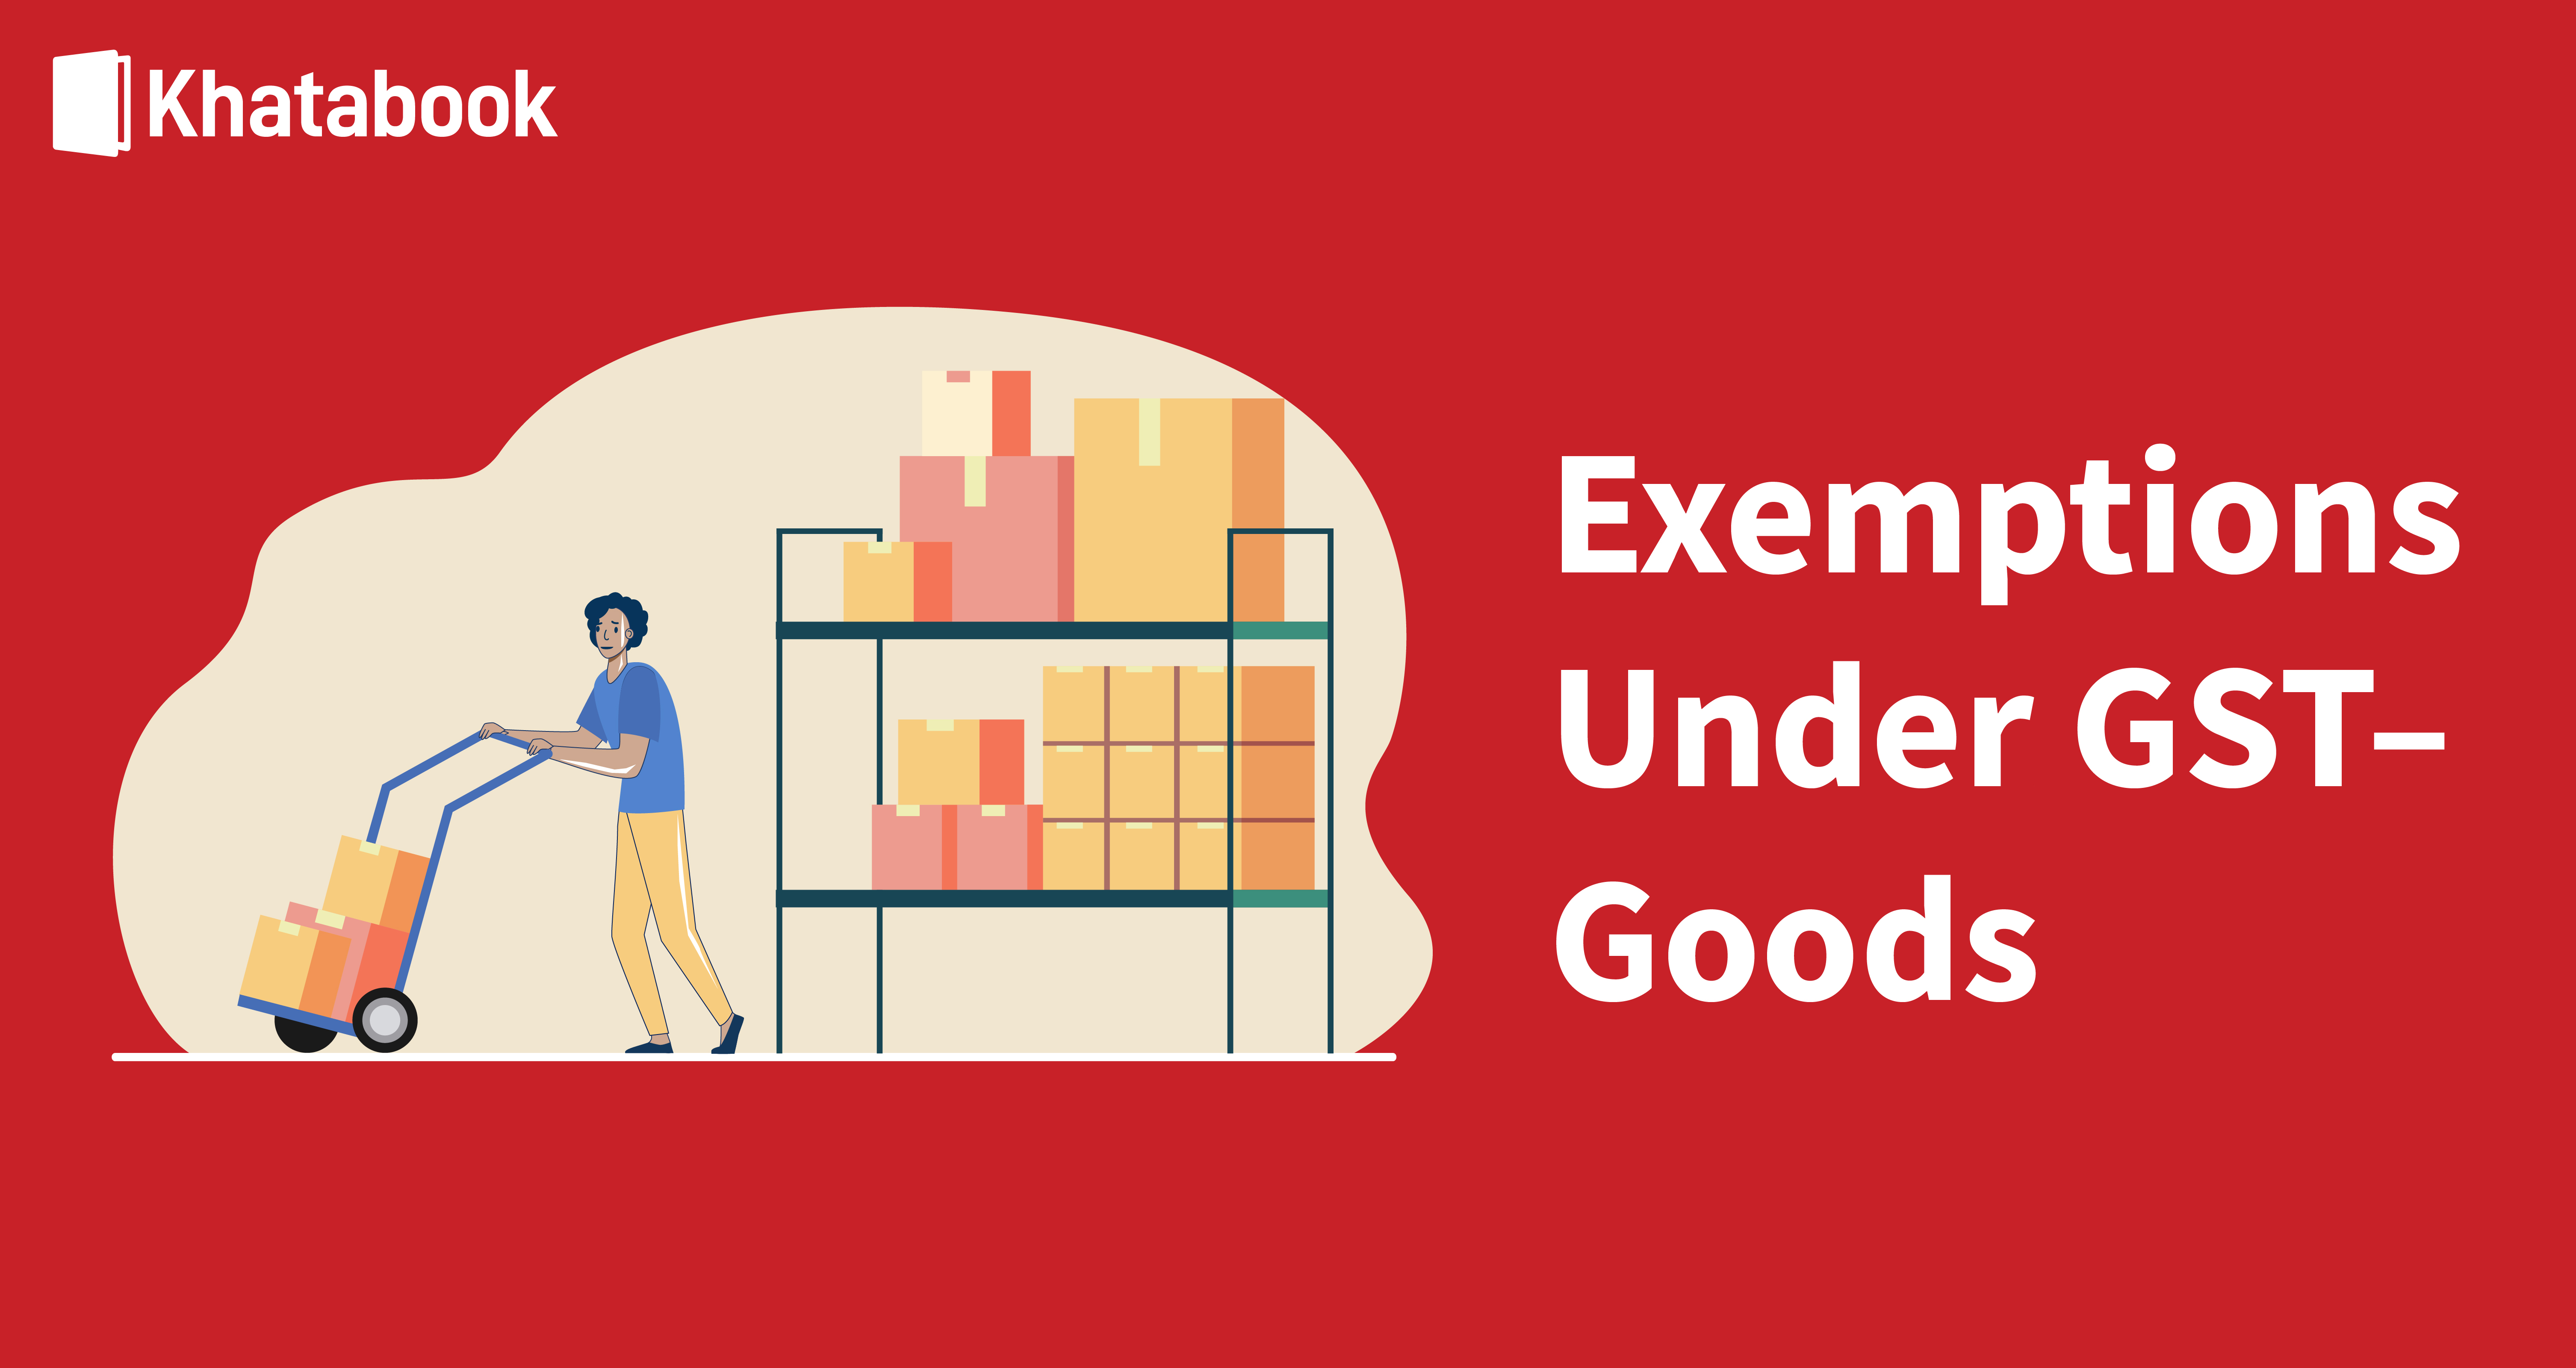 What Are The Goods Exempted Under GST?